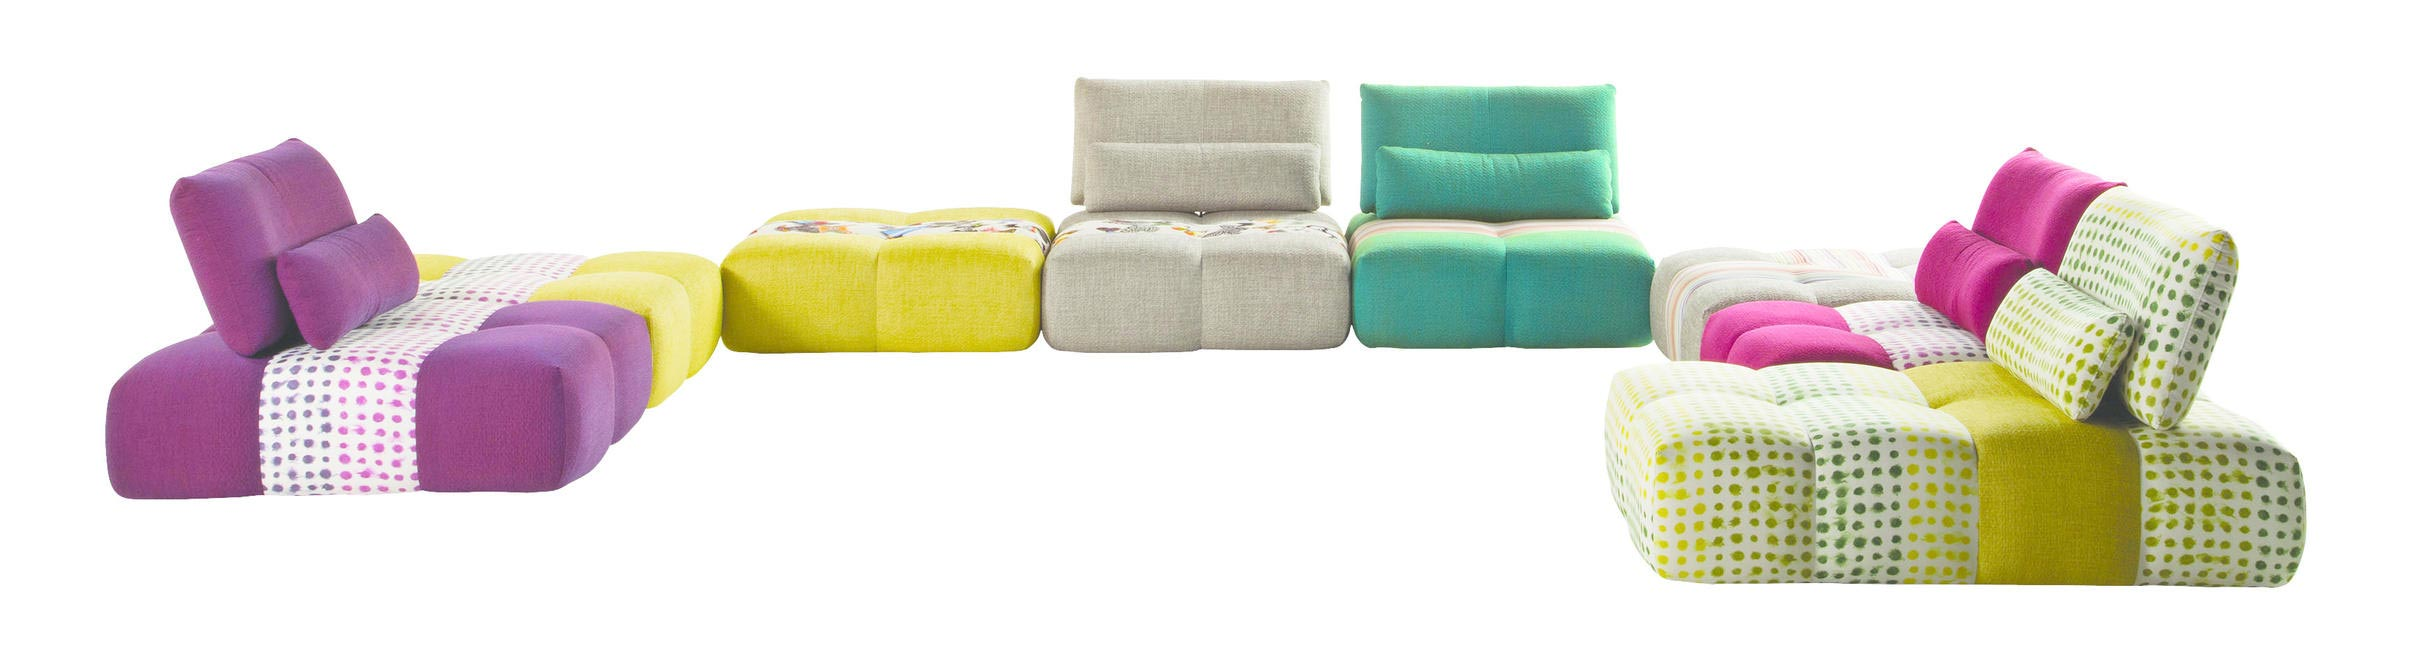 Parcours Sofa by Sacha Lakic